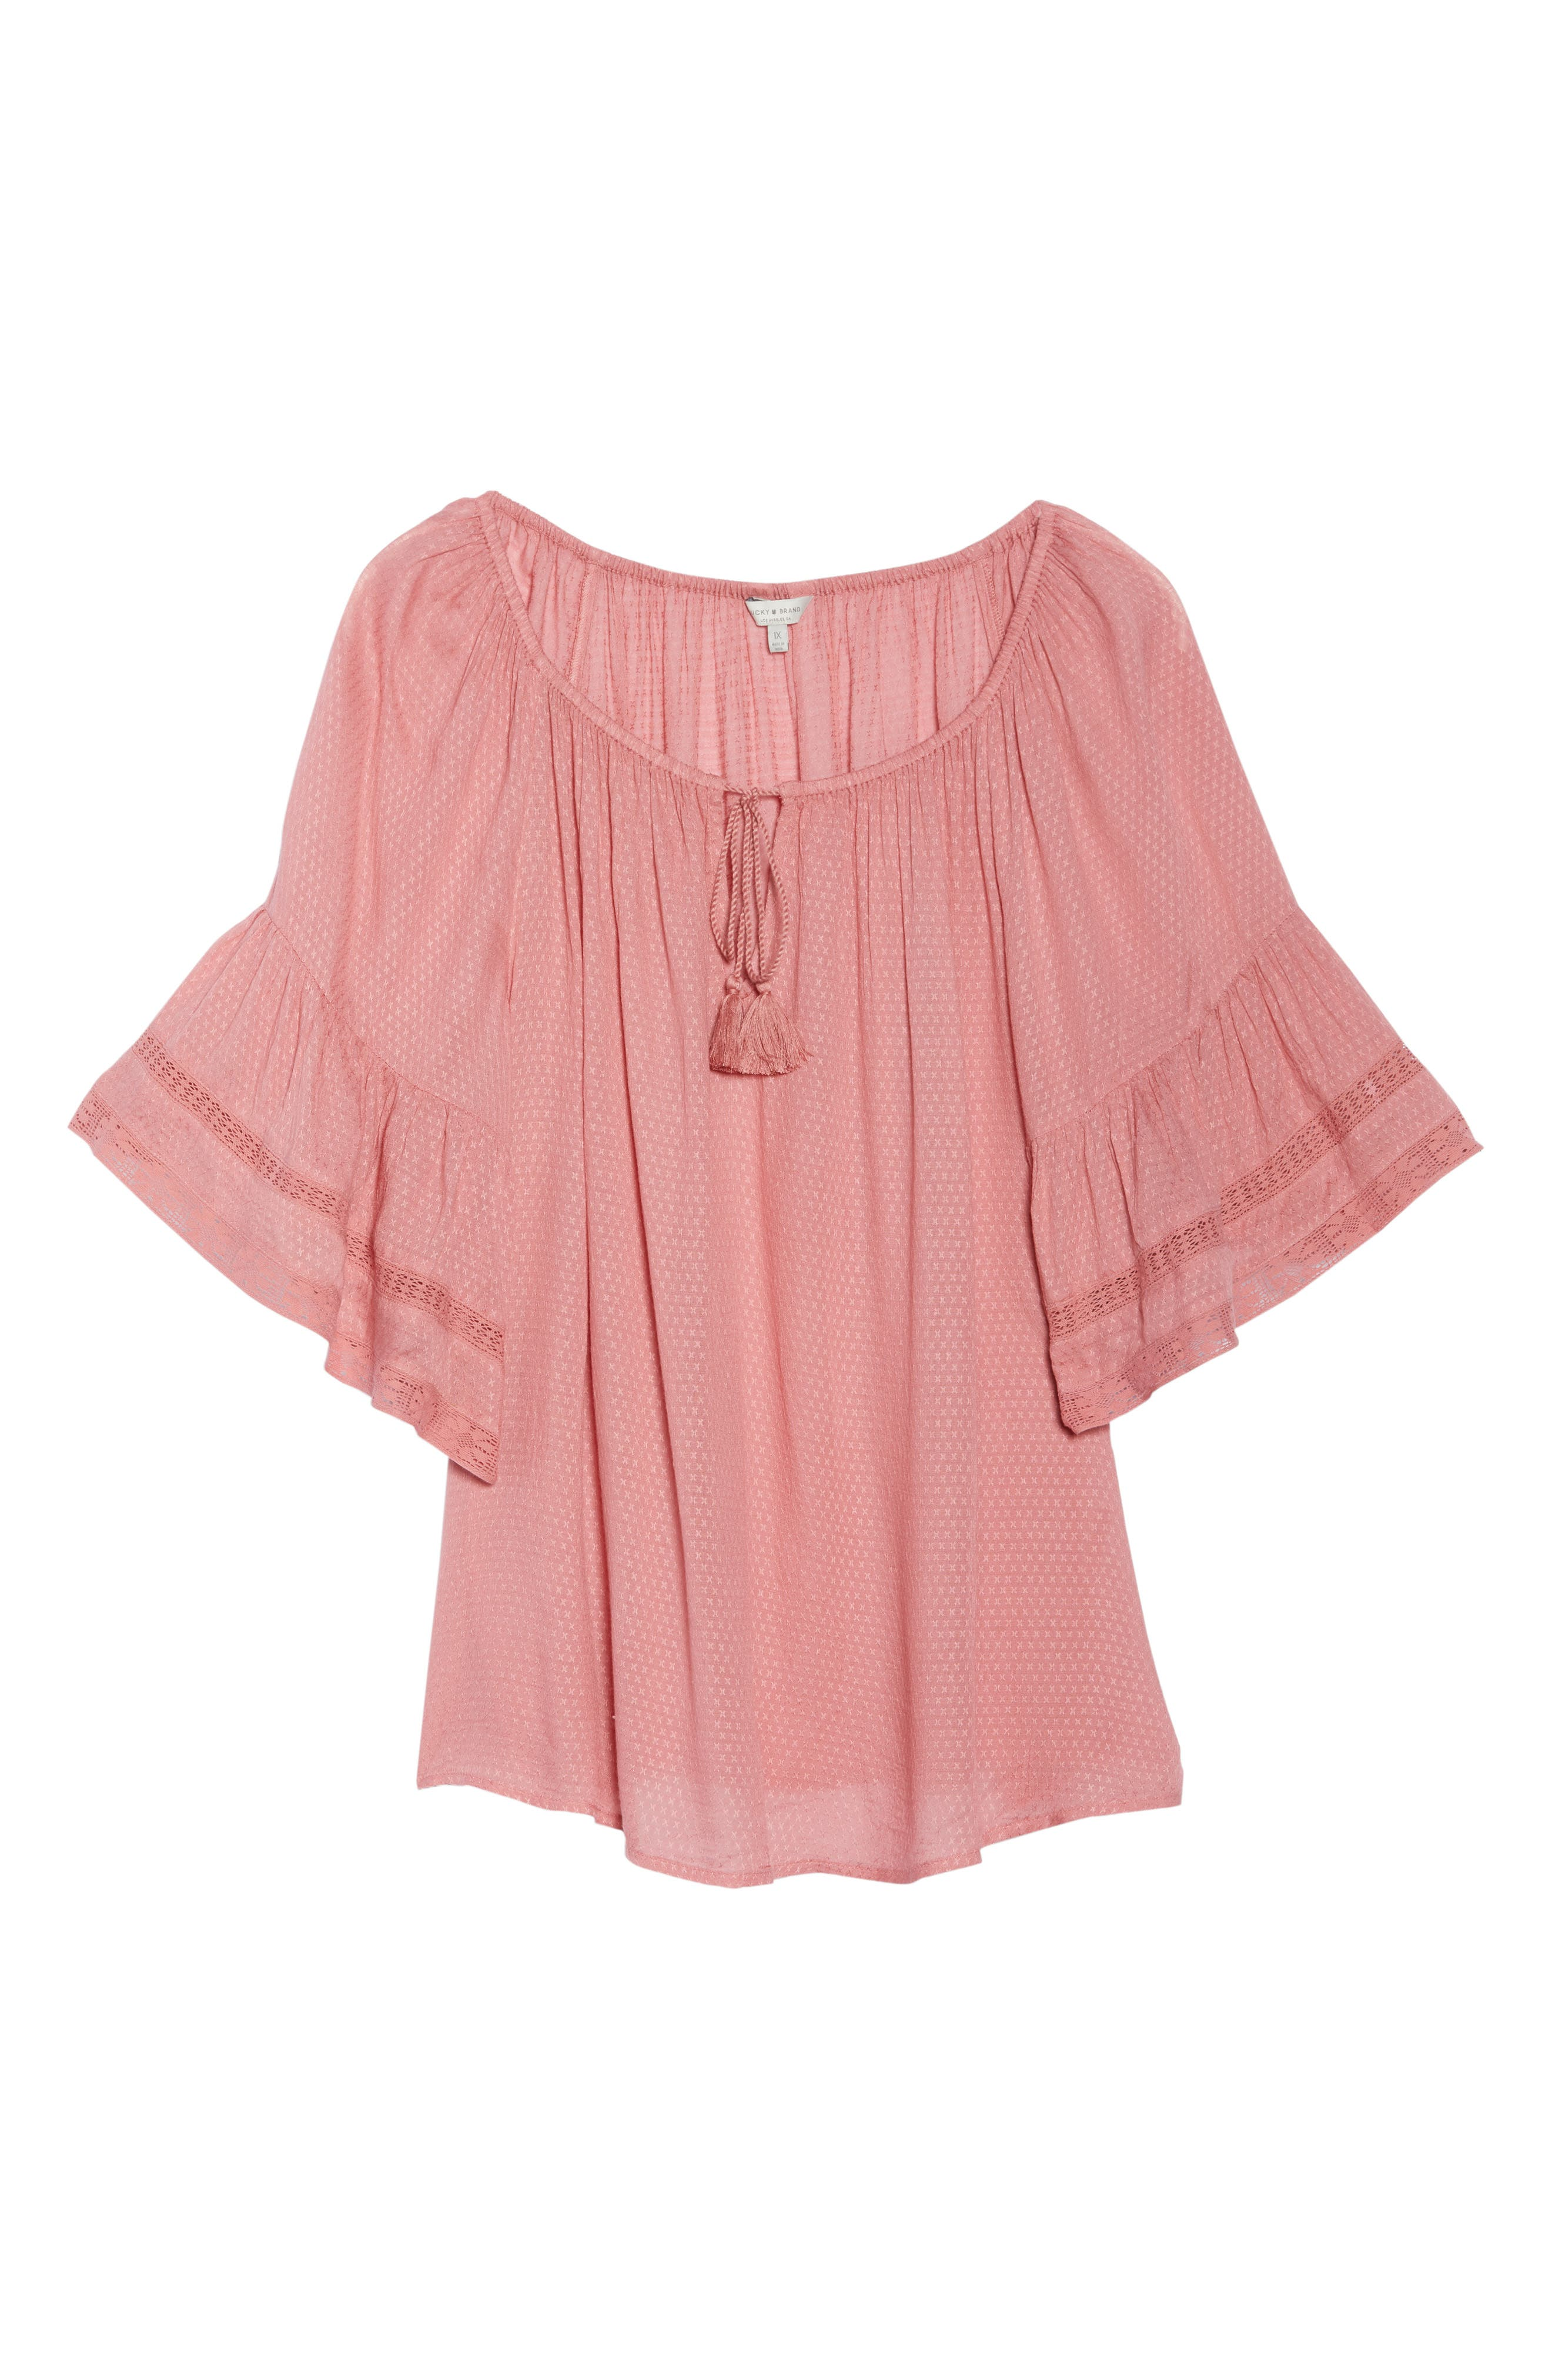 Bell Sleeve Peasant Top,                             Alternate thumbnail 7, color,                             950